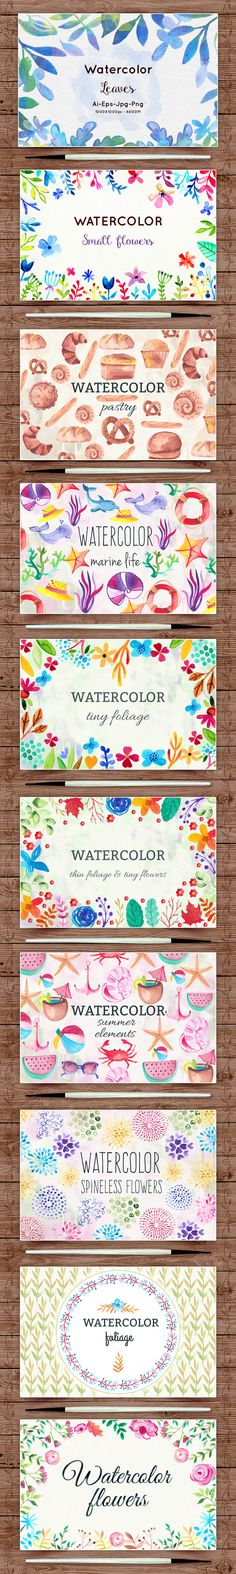 650+ Delightful Watercolor Clip-Art Elements for only $24!